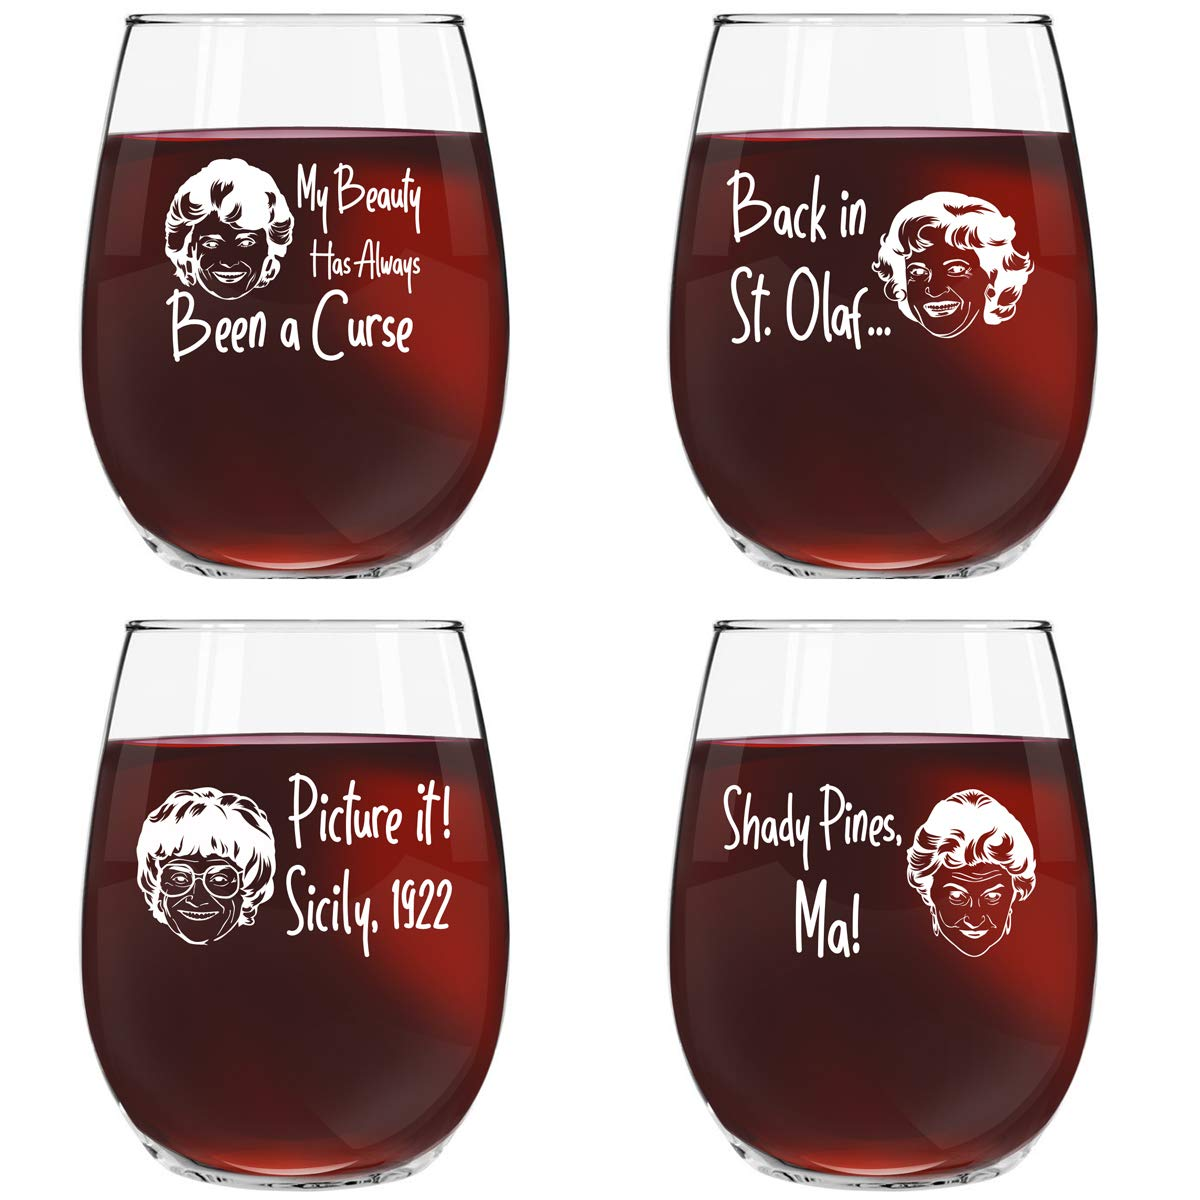 Golden Girls Inspired Stemless Wine Glass Set of 4 (15 oz)- Funny Novelty Glasses for Party, Event, Girls Night- Unique Birthday Gift For Mom, Women Best Friend- Fun Drinking for Bachelorette Parties by DU VINO